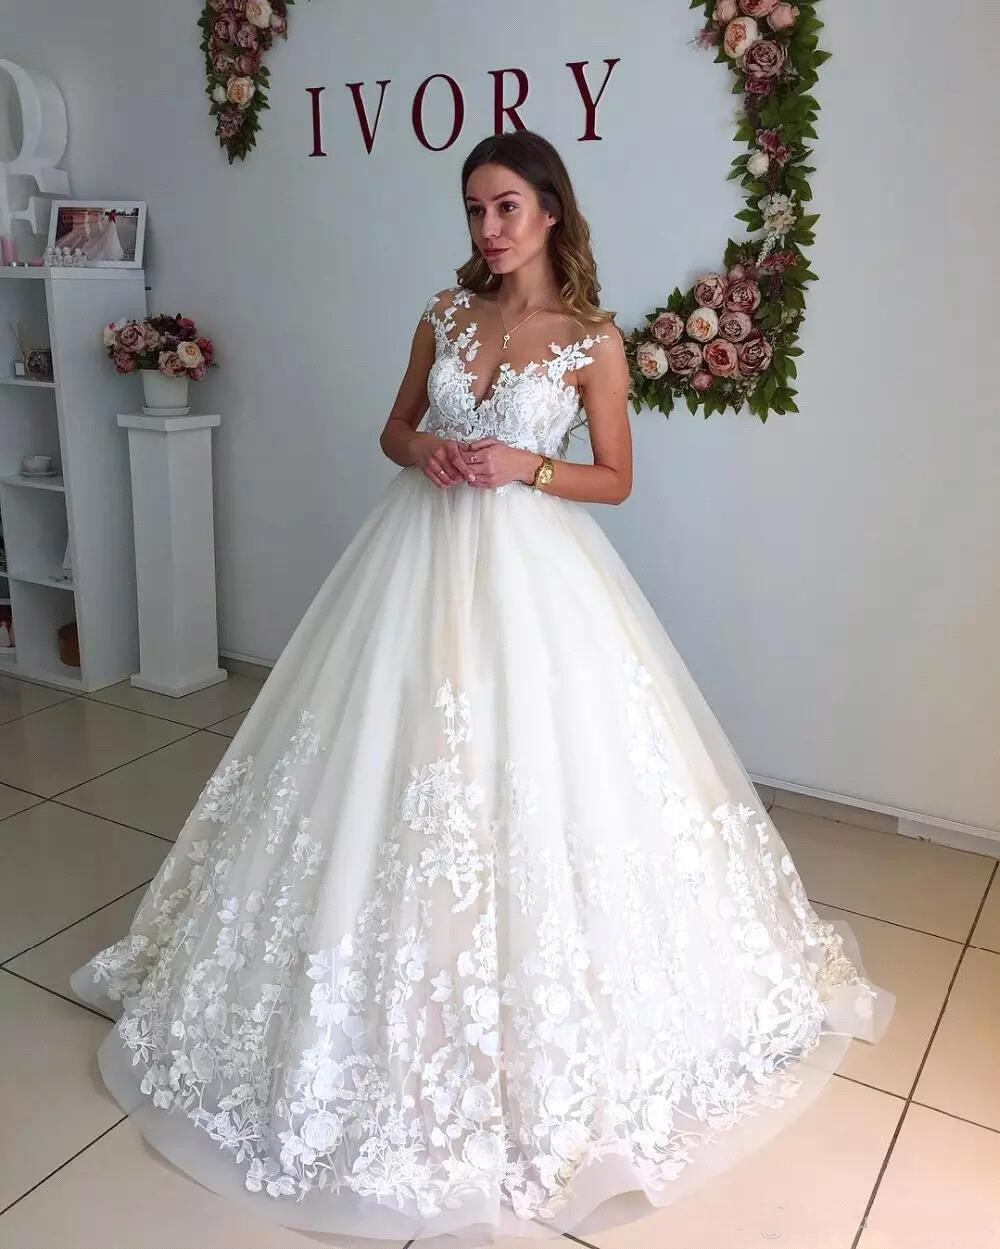 2019 Pregnant Wedding Dresses Elegant Lace Sheer Neck Capped Sleeve Maternity Backless Plus Size Customize Bridal Ball Gown in Wedding Dresses from Weddings Events